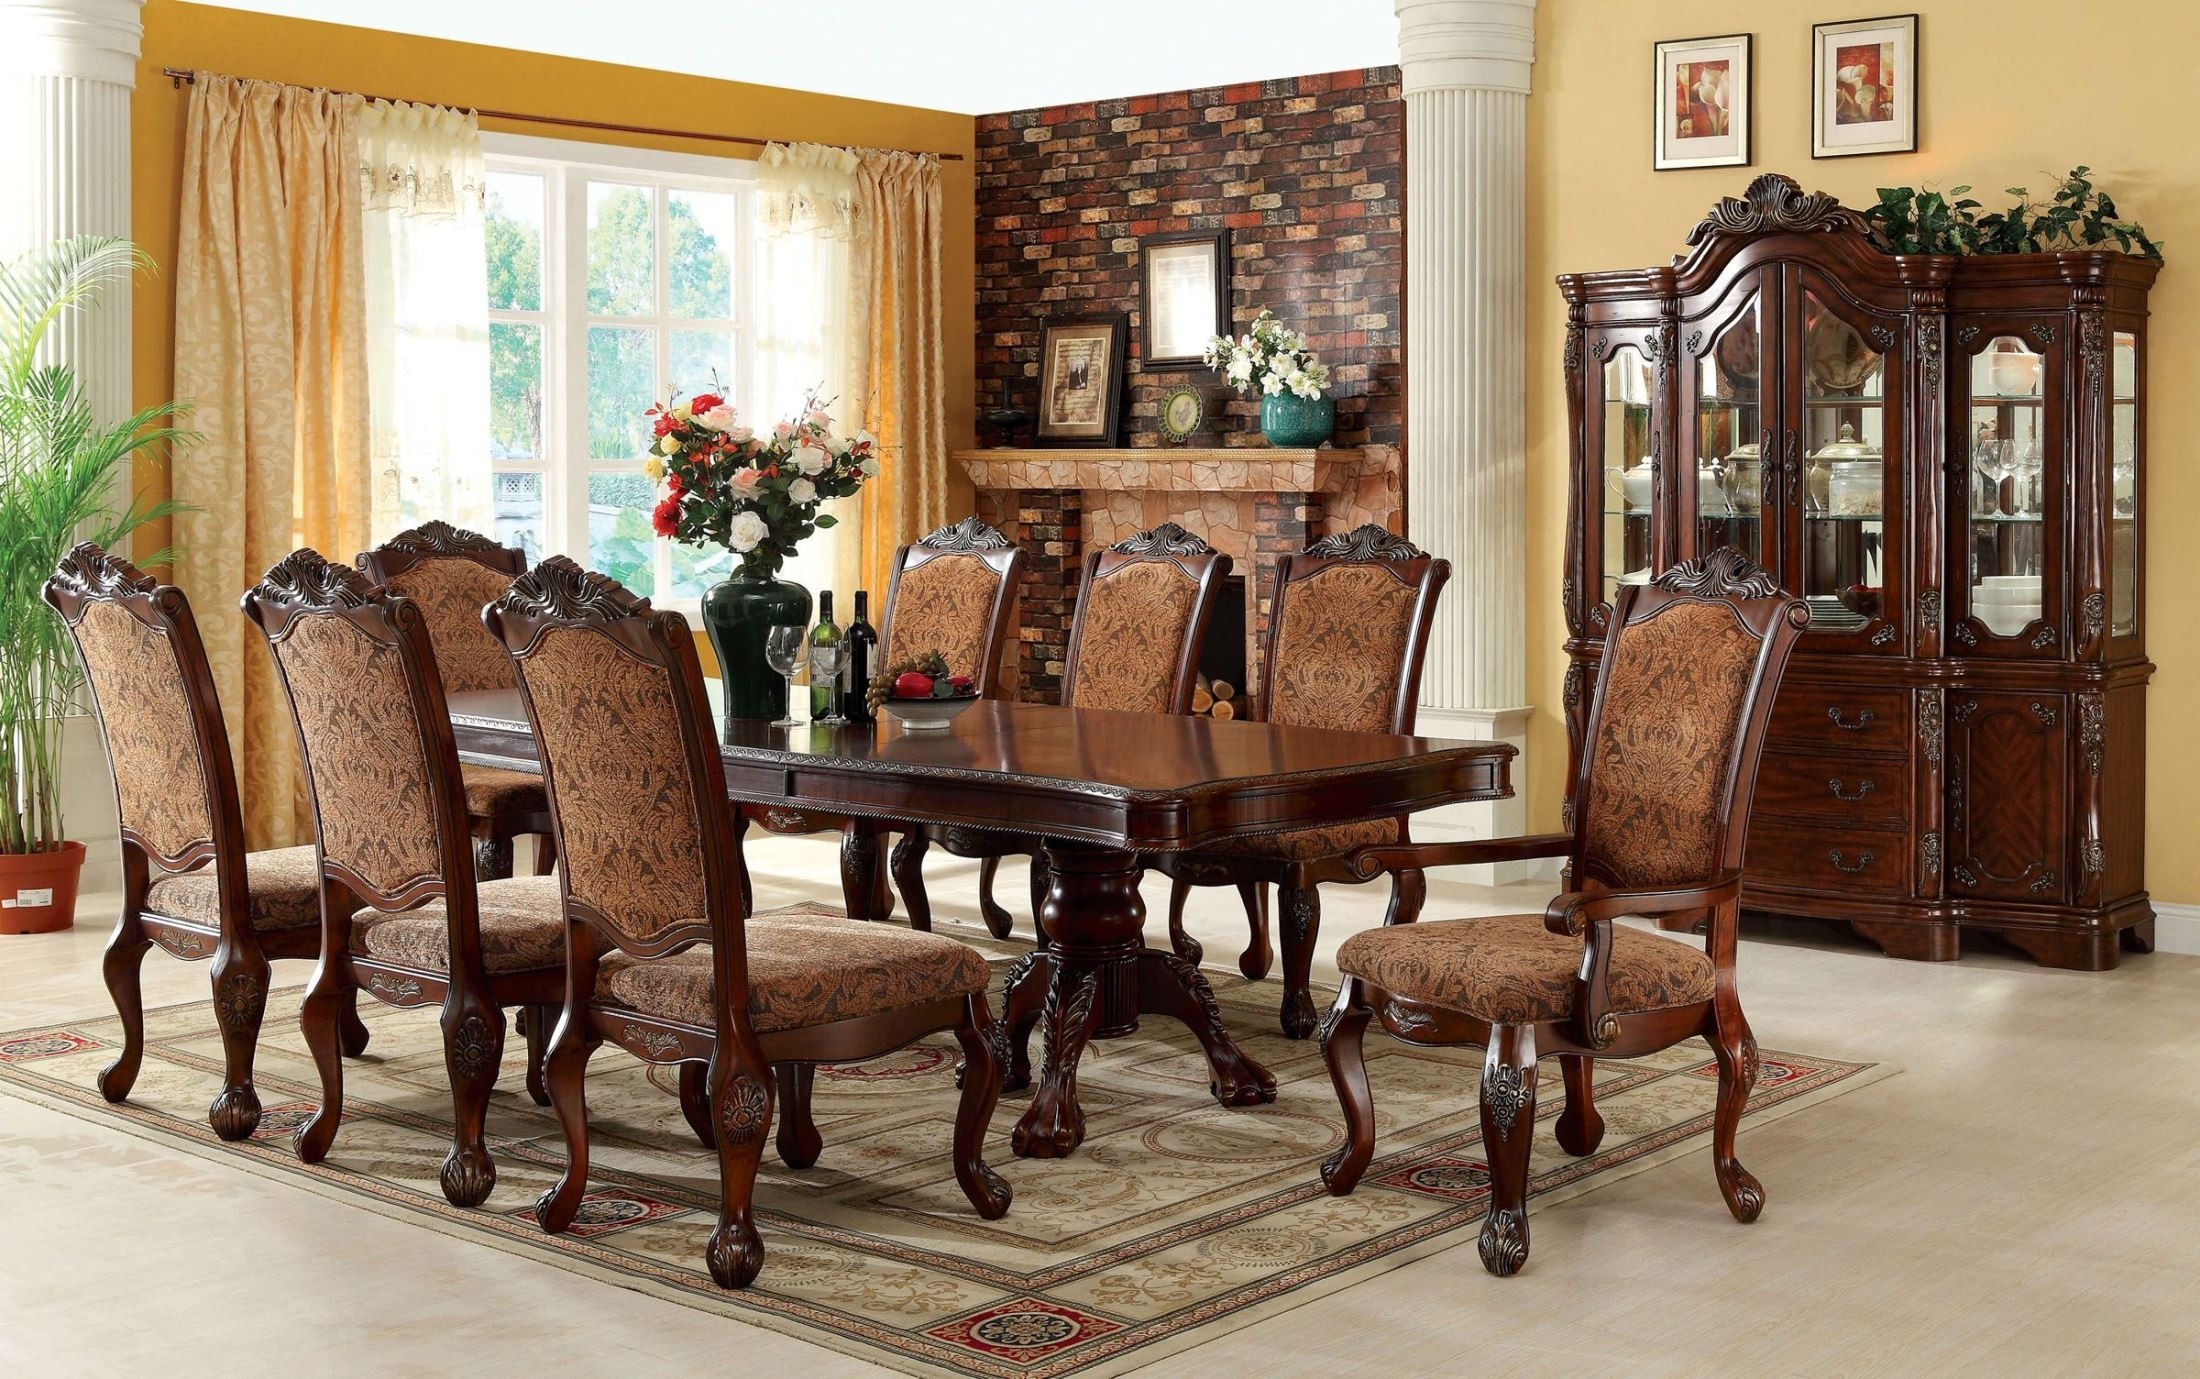 Cromwell antique cherry formal dining room set cm3103t for Breakfast room furniture